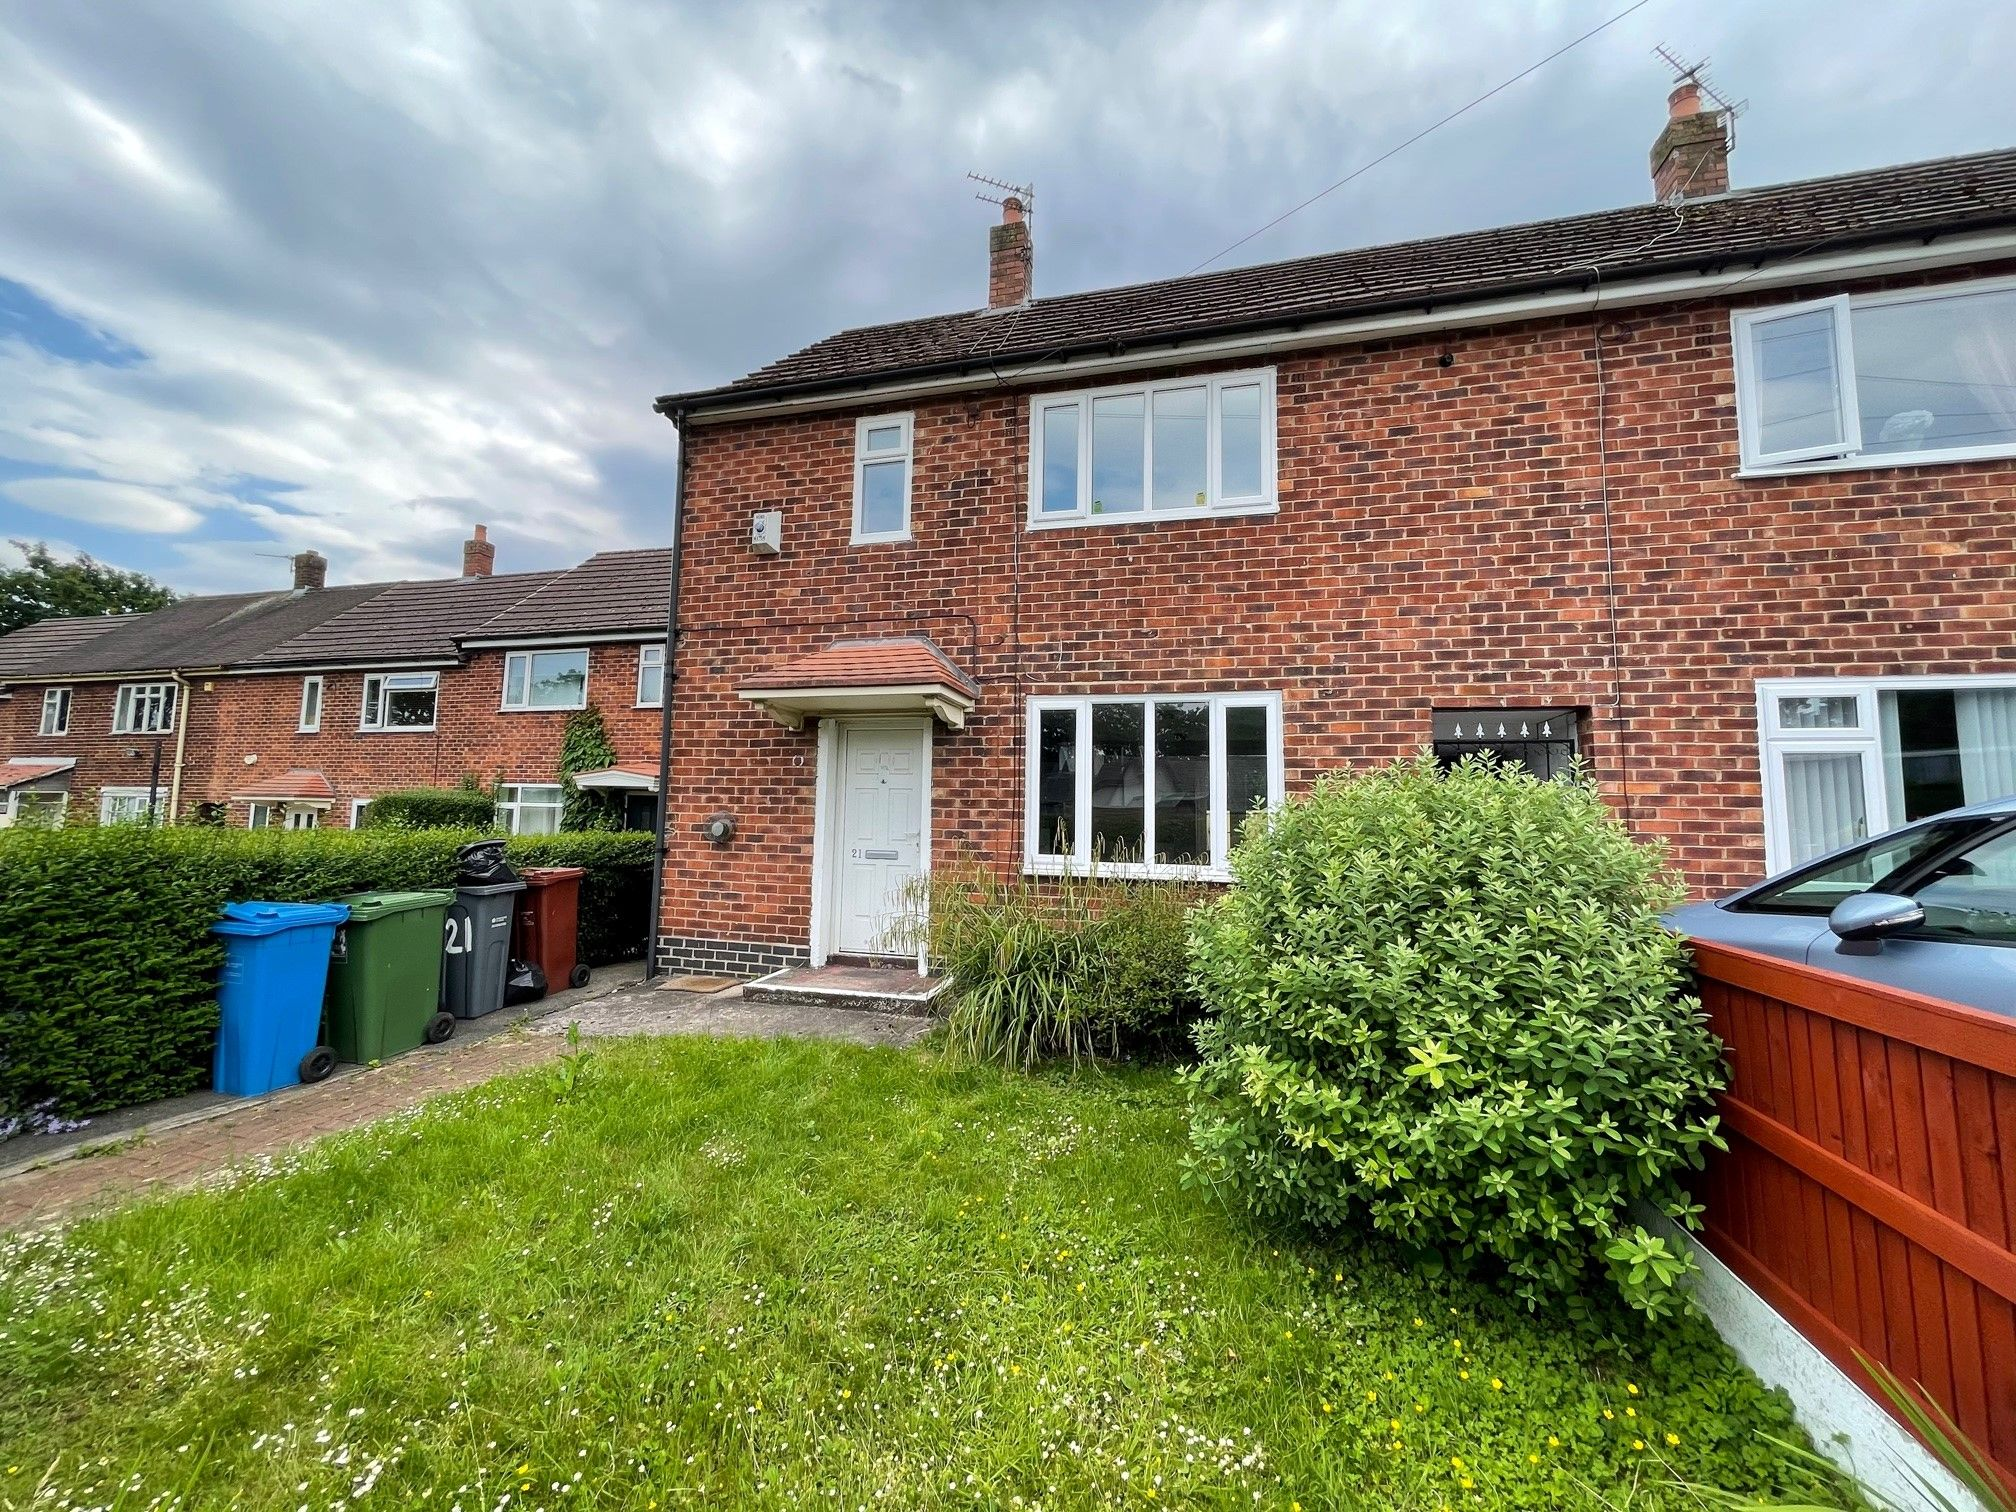 2 bedroom end terraced house SSTC in Manchester - Photograph 17.